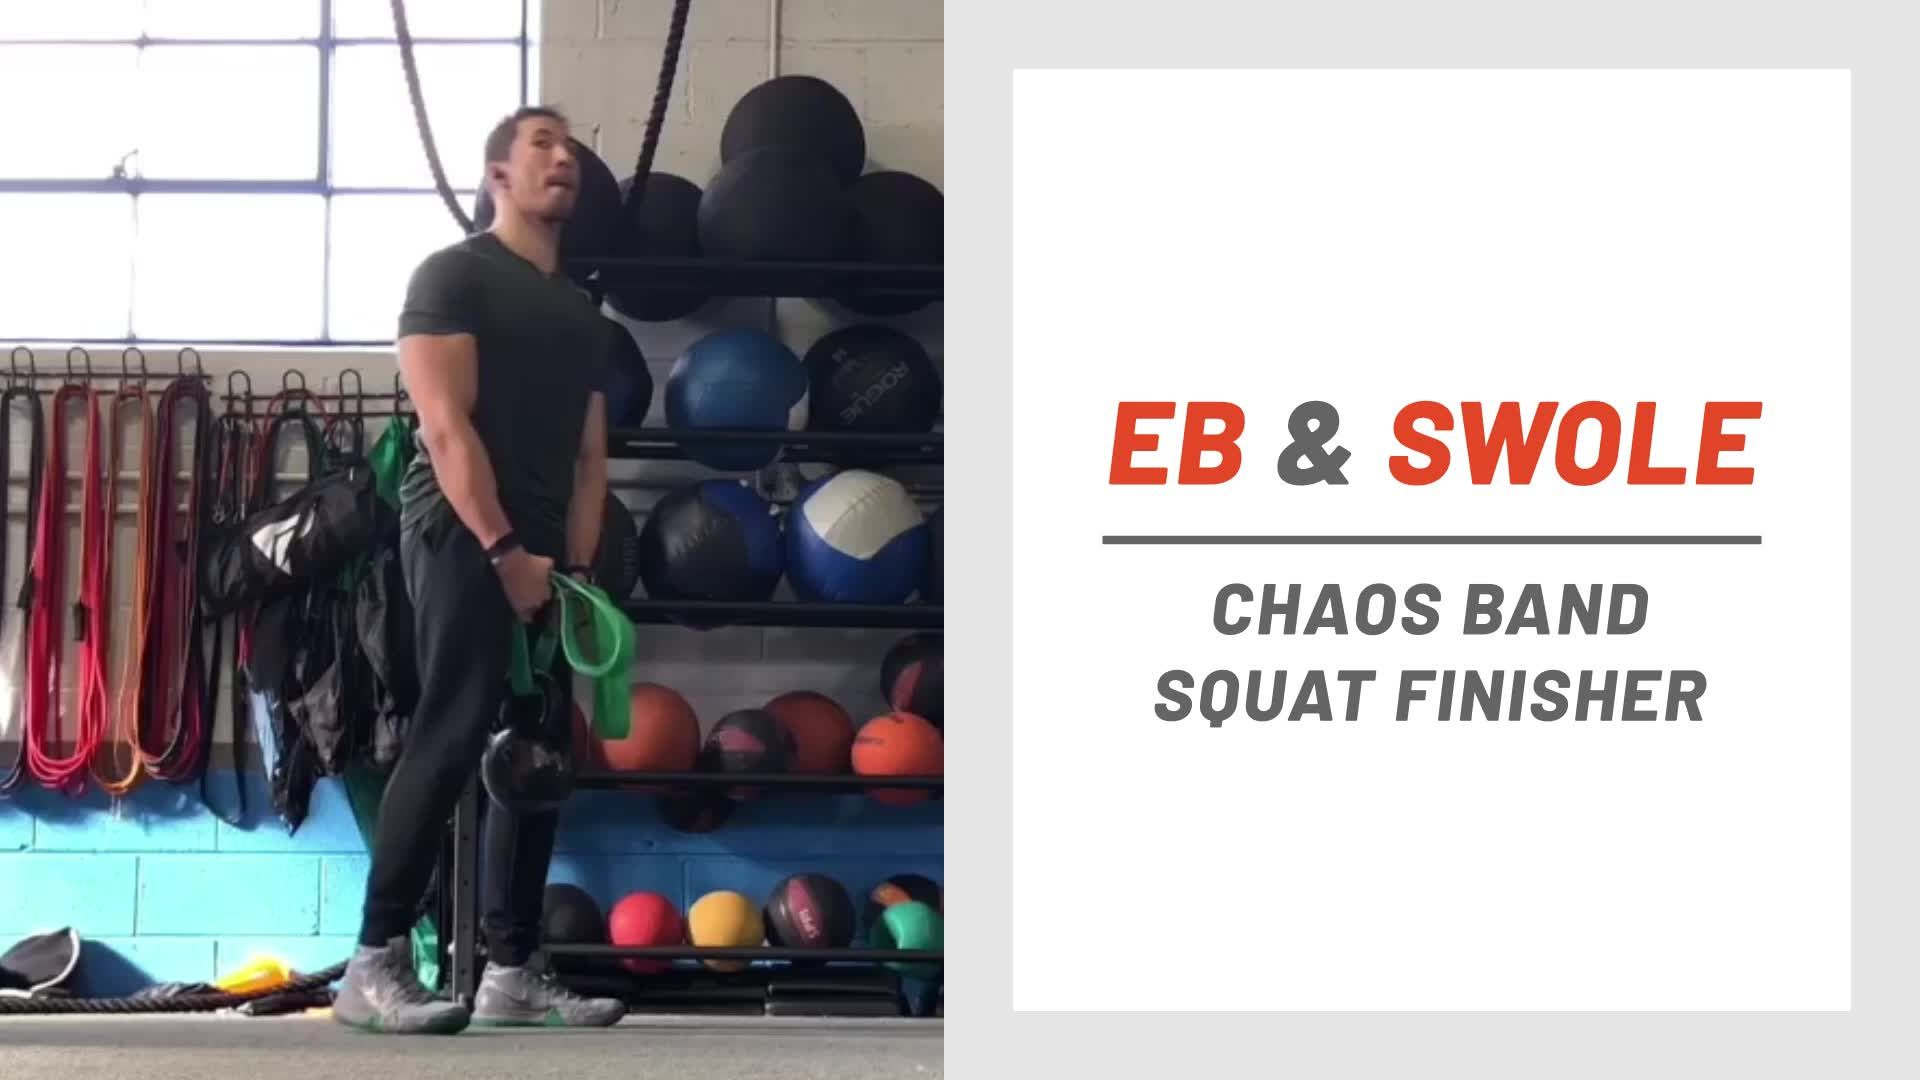 This Lower Body Finisher Uses a Dose of Chaos to Crush Your Legs